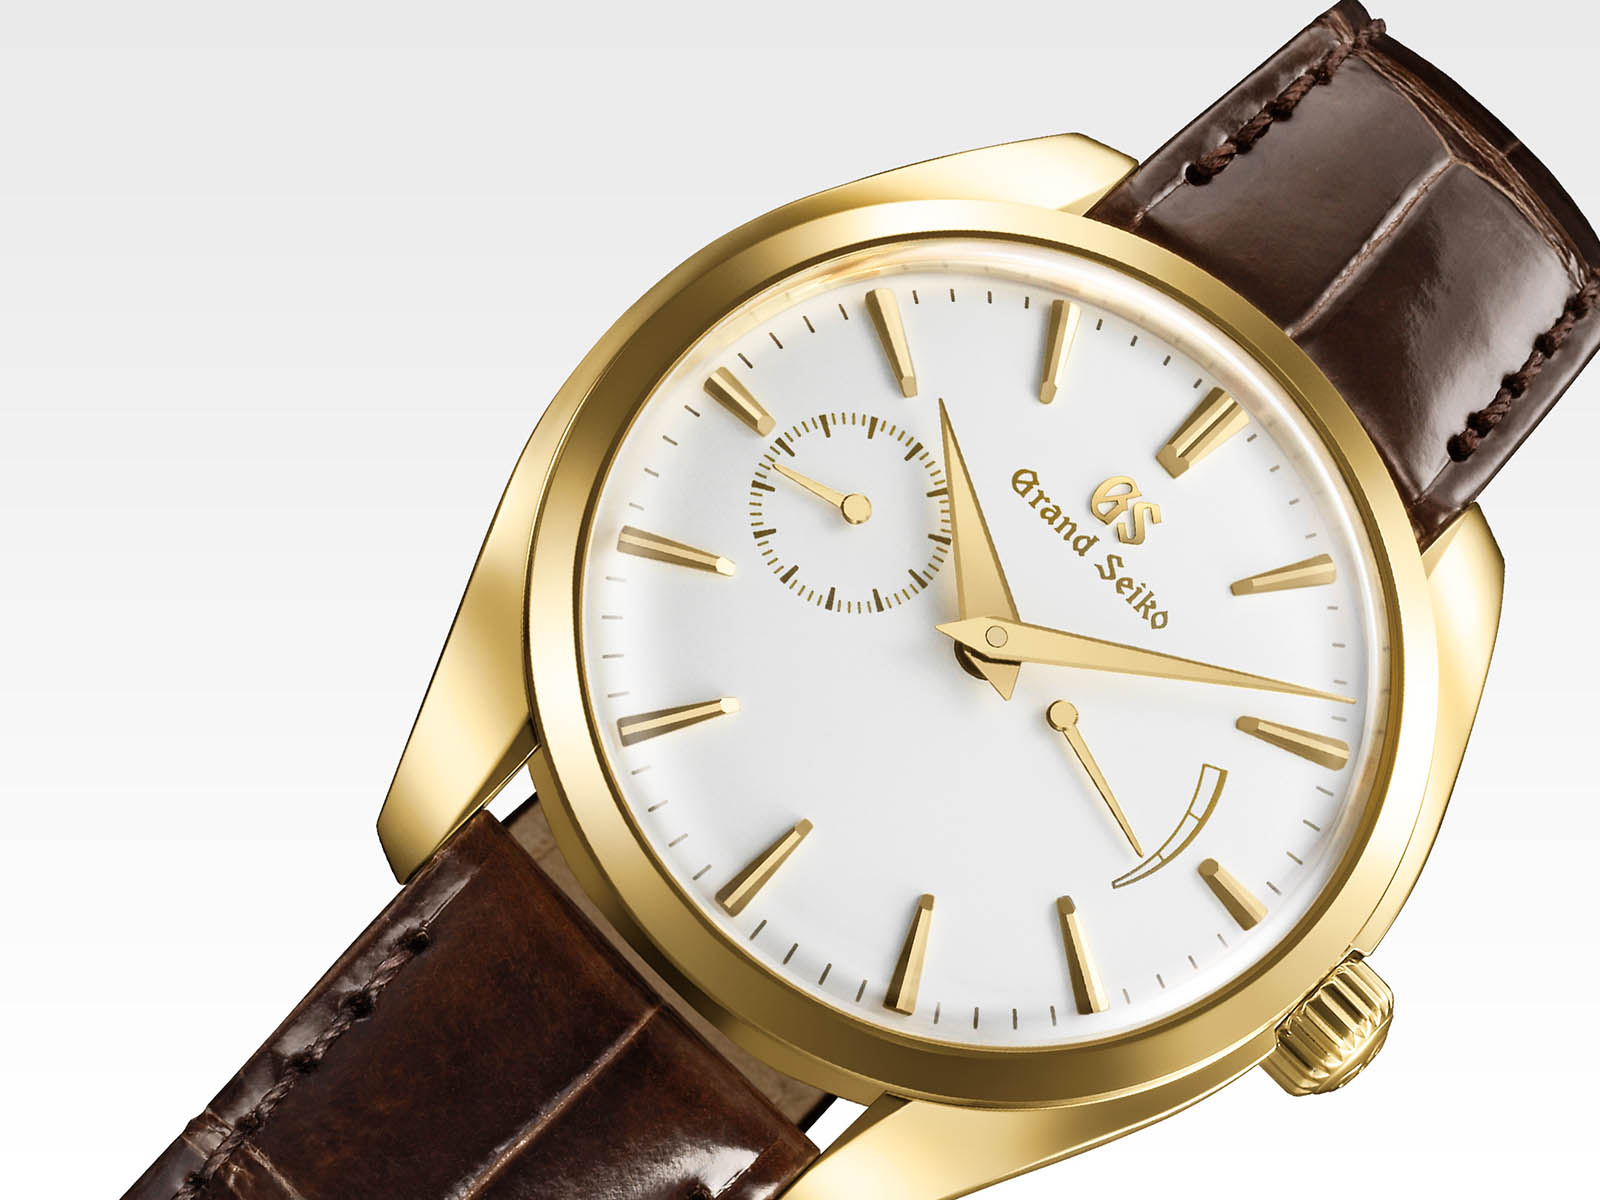 sbgk006-grand-seiko-elegance-collection-2.jpg